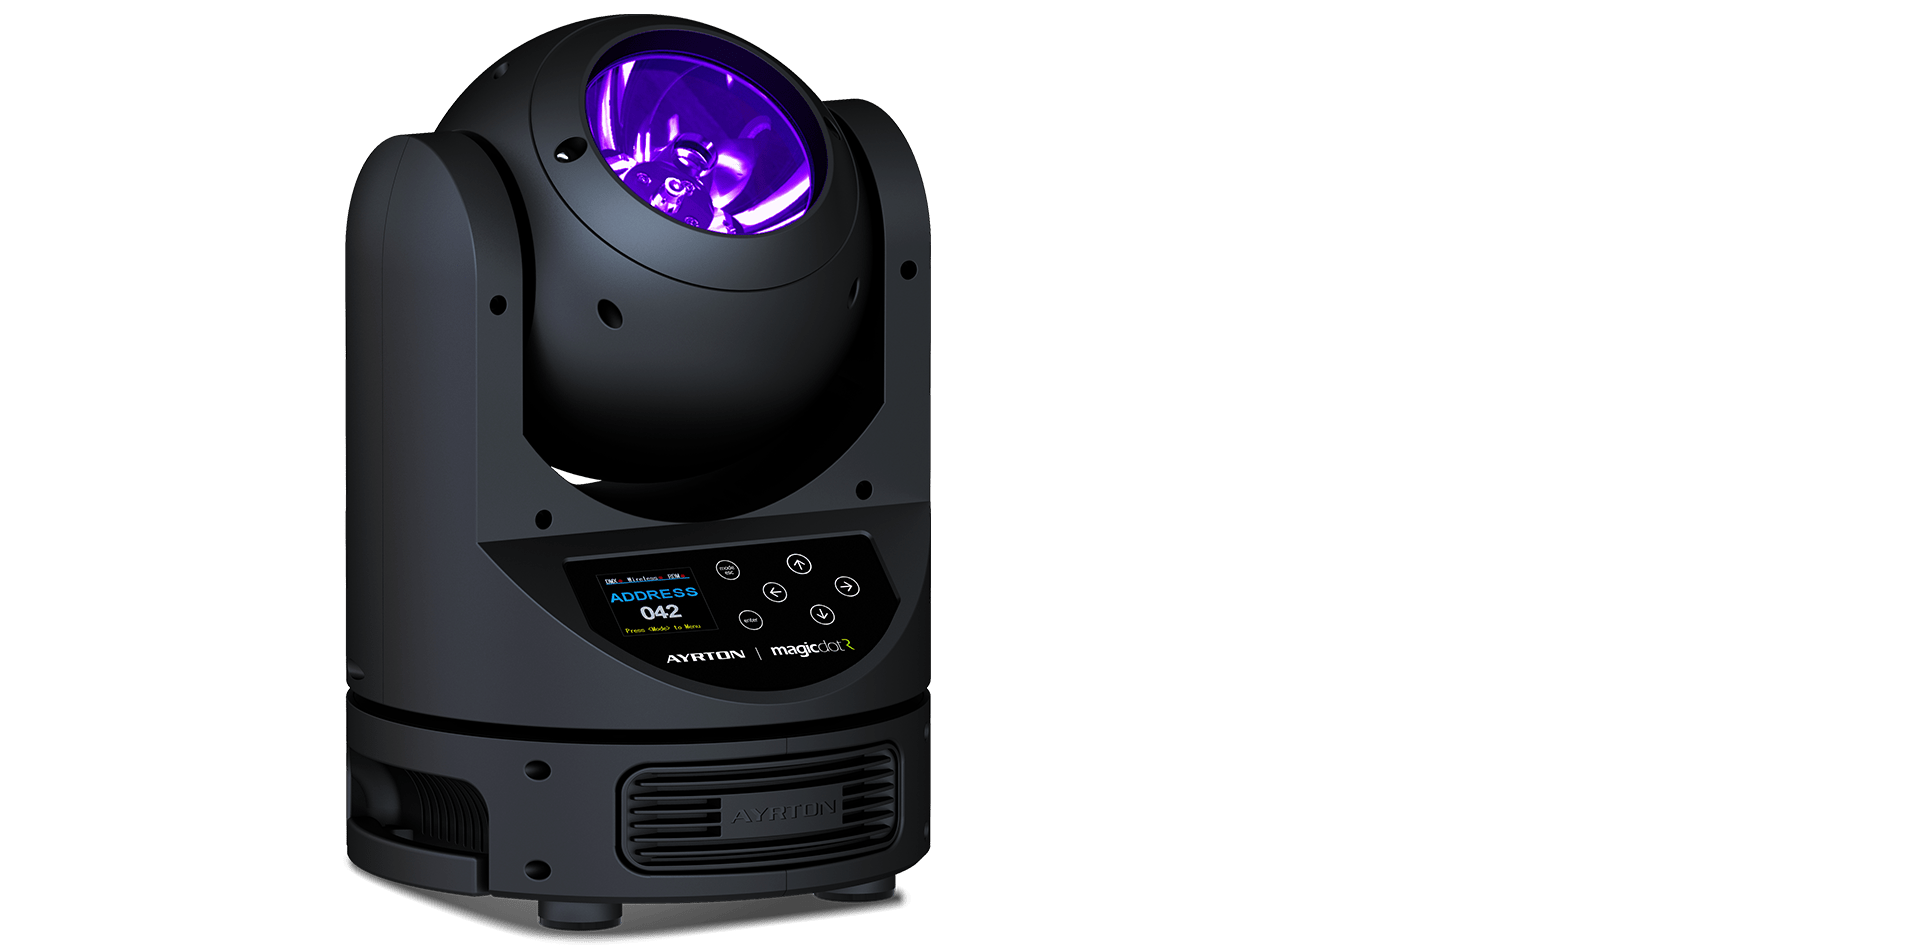 Jb Lighting Moving Head Magicdot R Ayrton